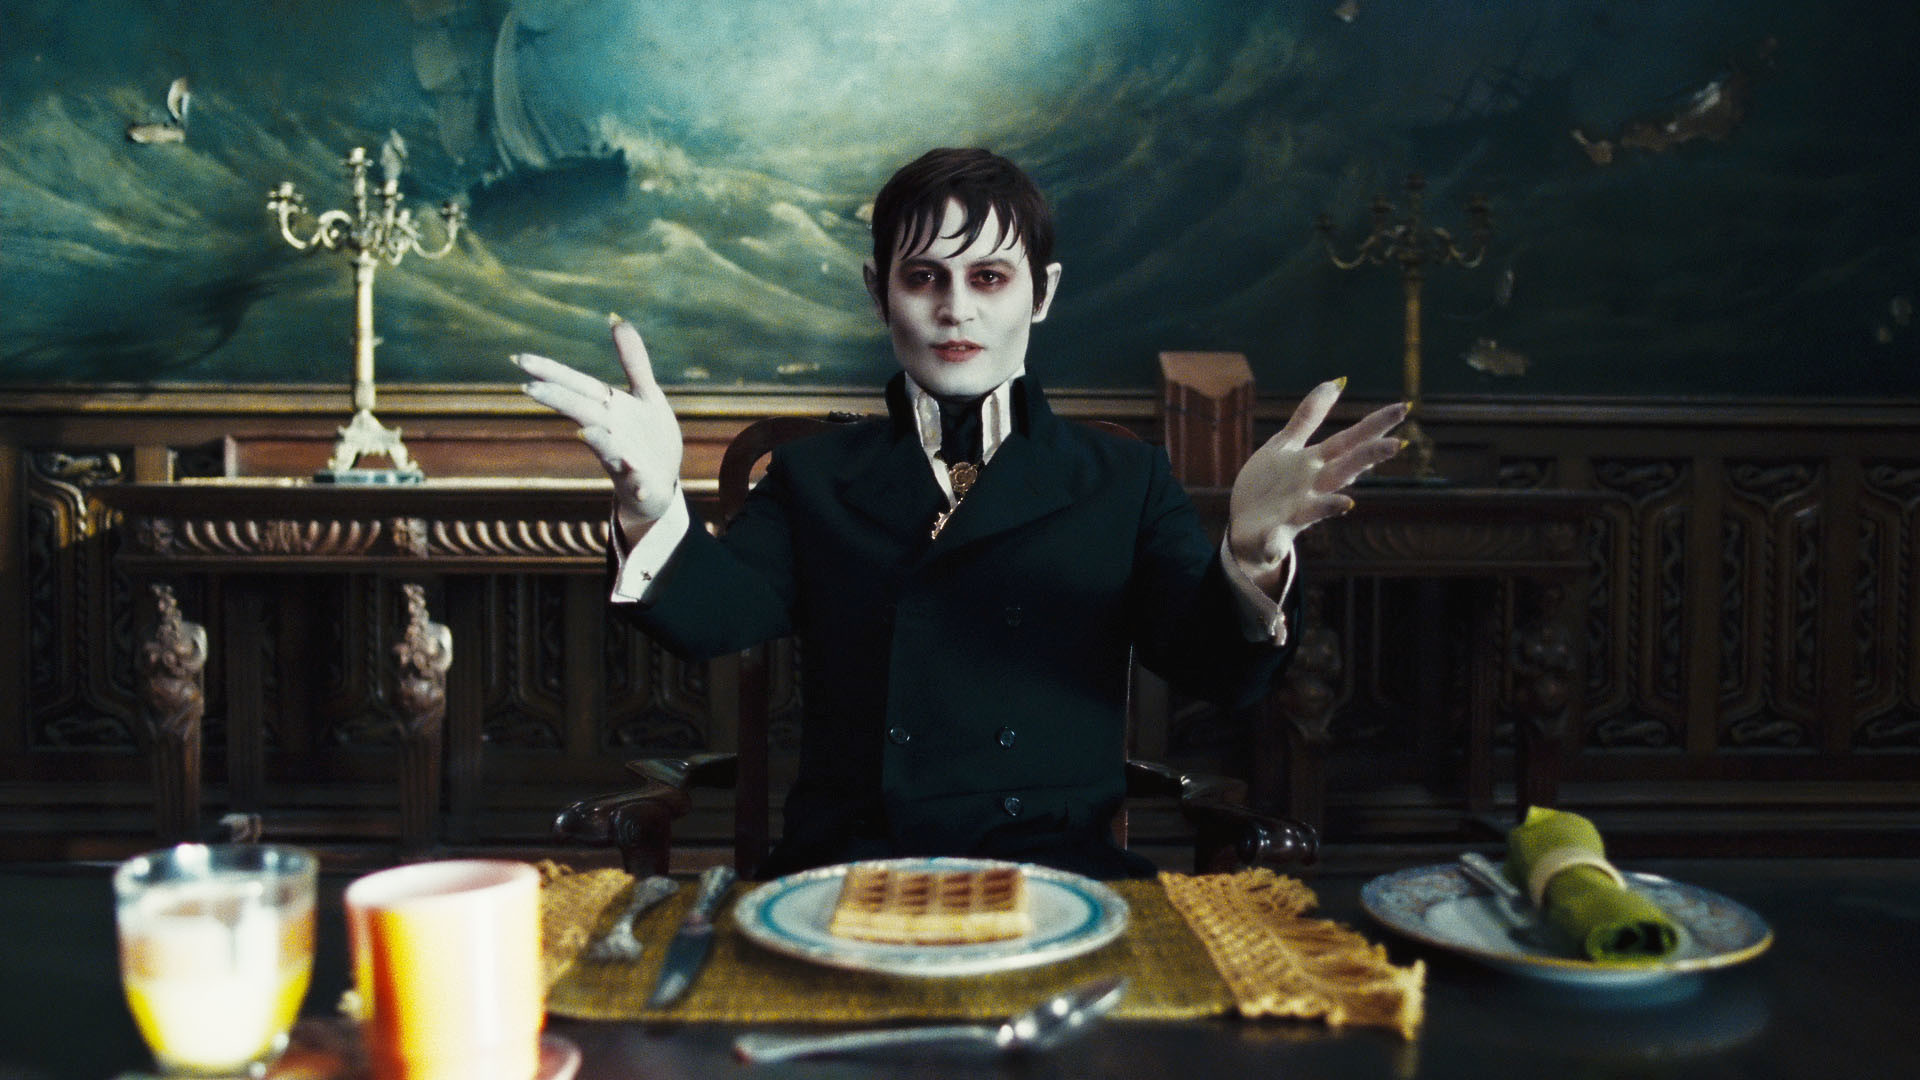 1920x1080 Dark Shadows HD Wallpaper | Hintergrund |  | ID:597471 - Wallpaper  Abyss